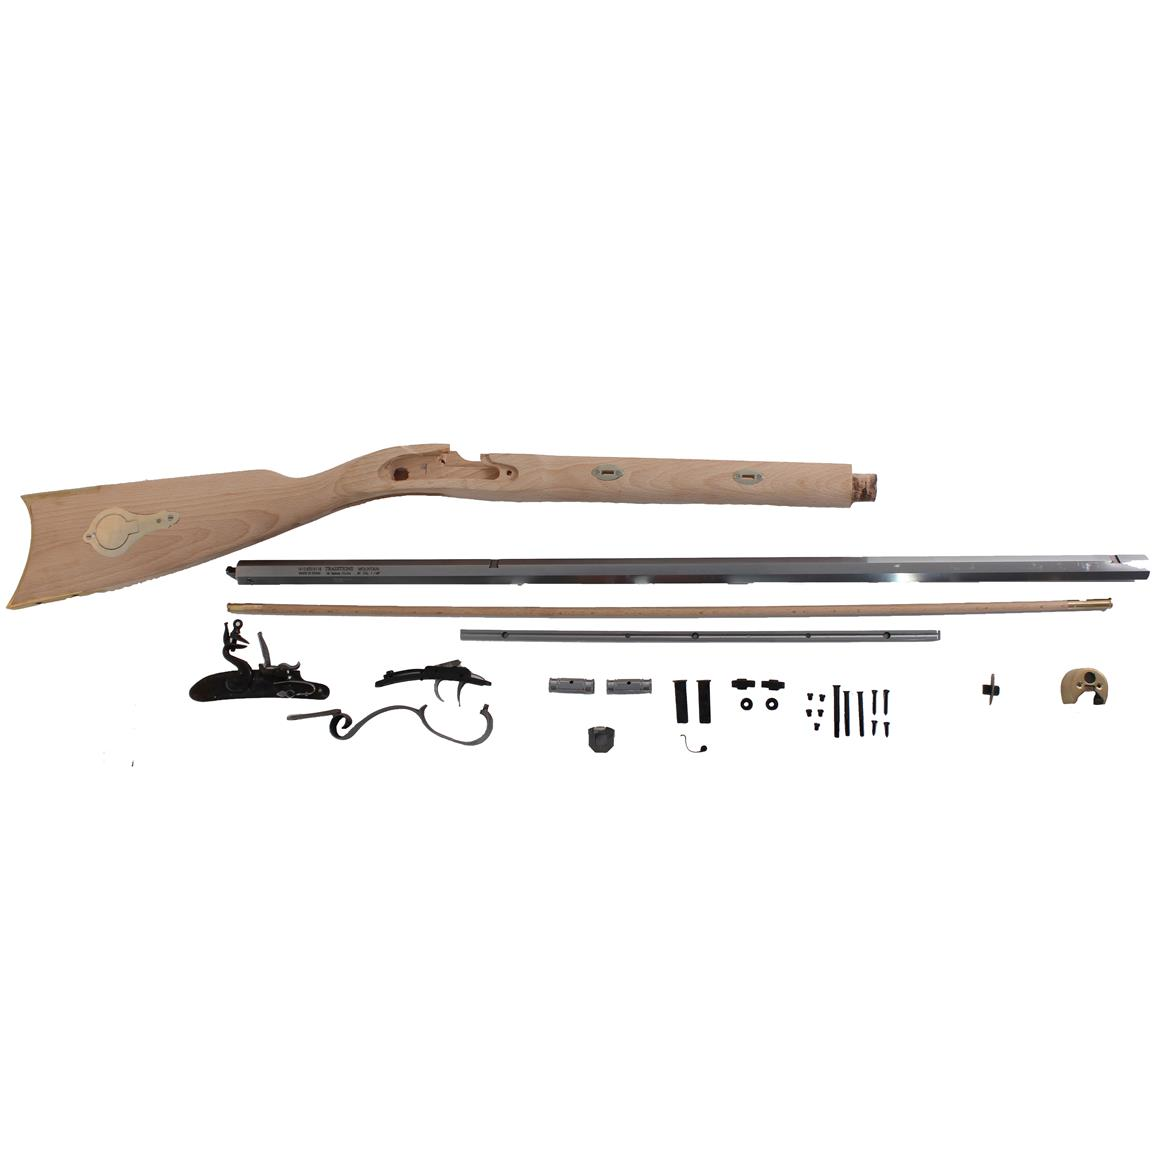 Traditions Mountain Rifle Flintlock .50 Caliber Build It Yourself Muzzleloader Kit